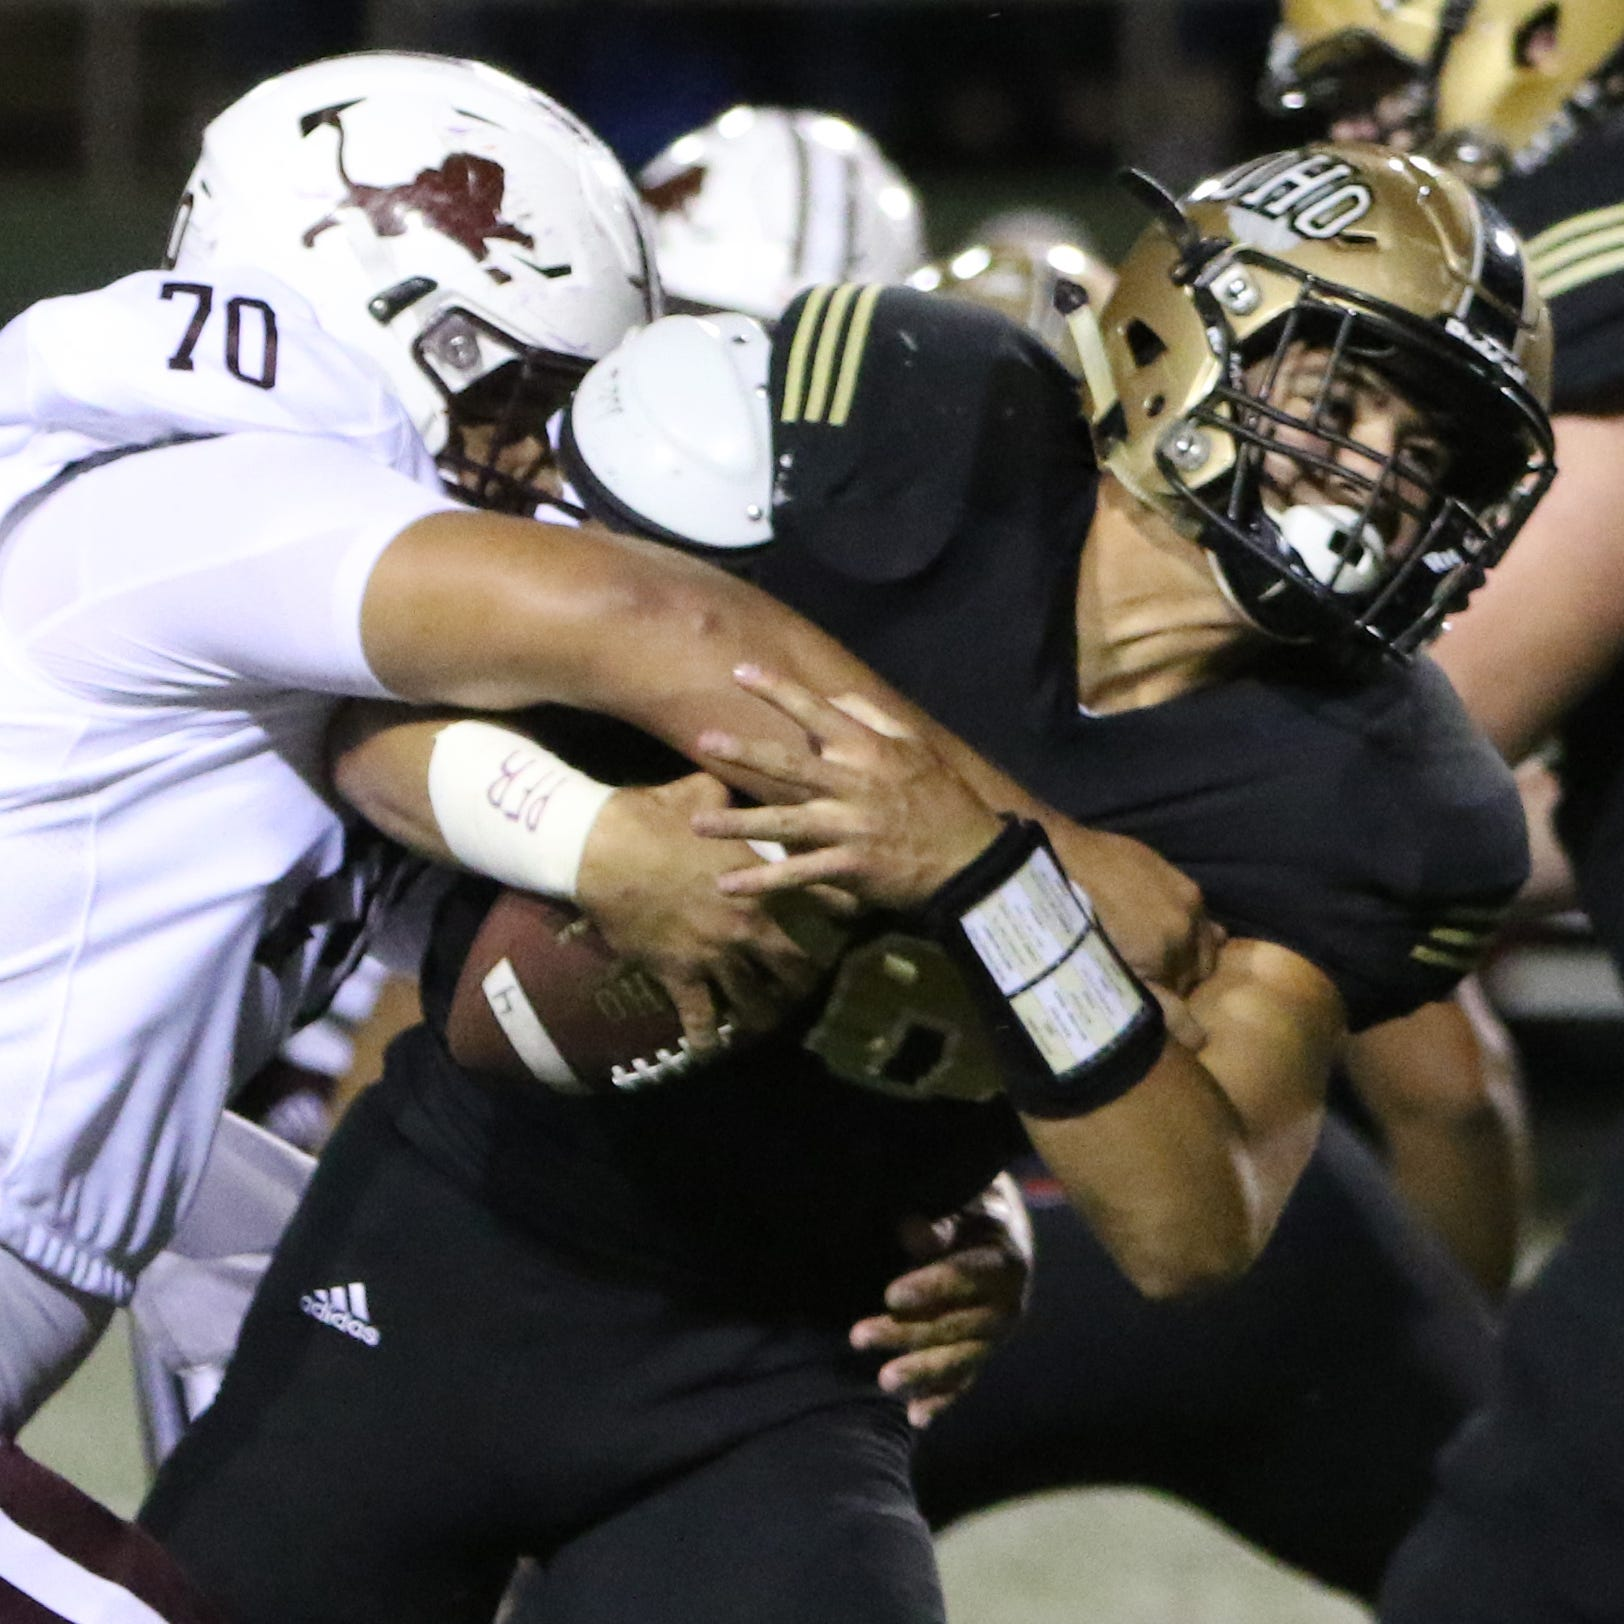 Hull: Rider Raiders break scoring drought, still fall to Brownwood, 20-16